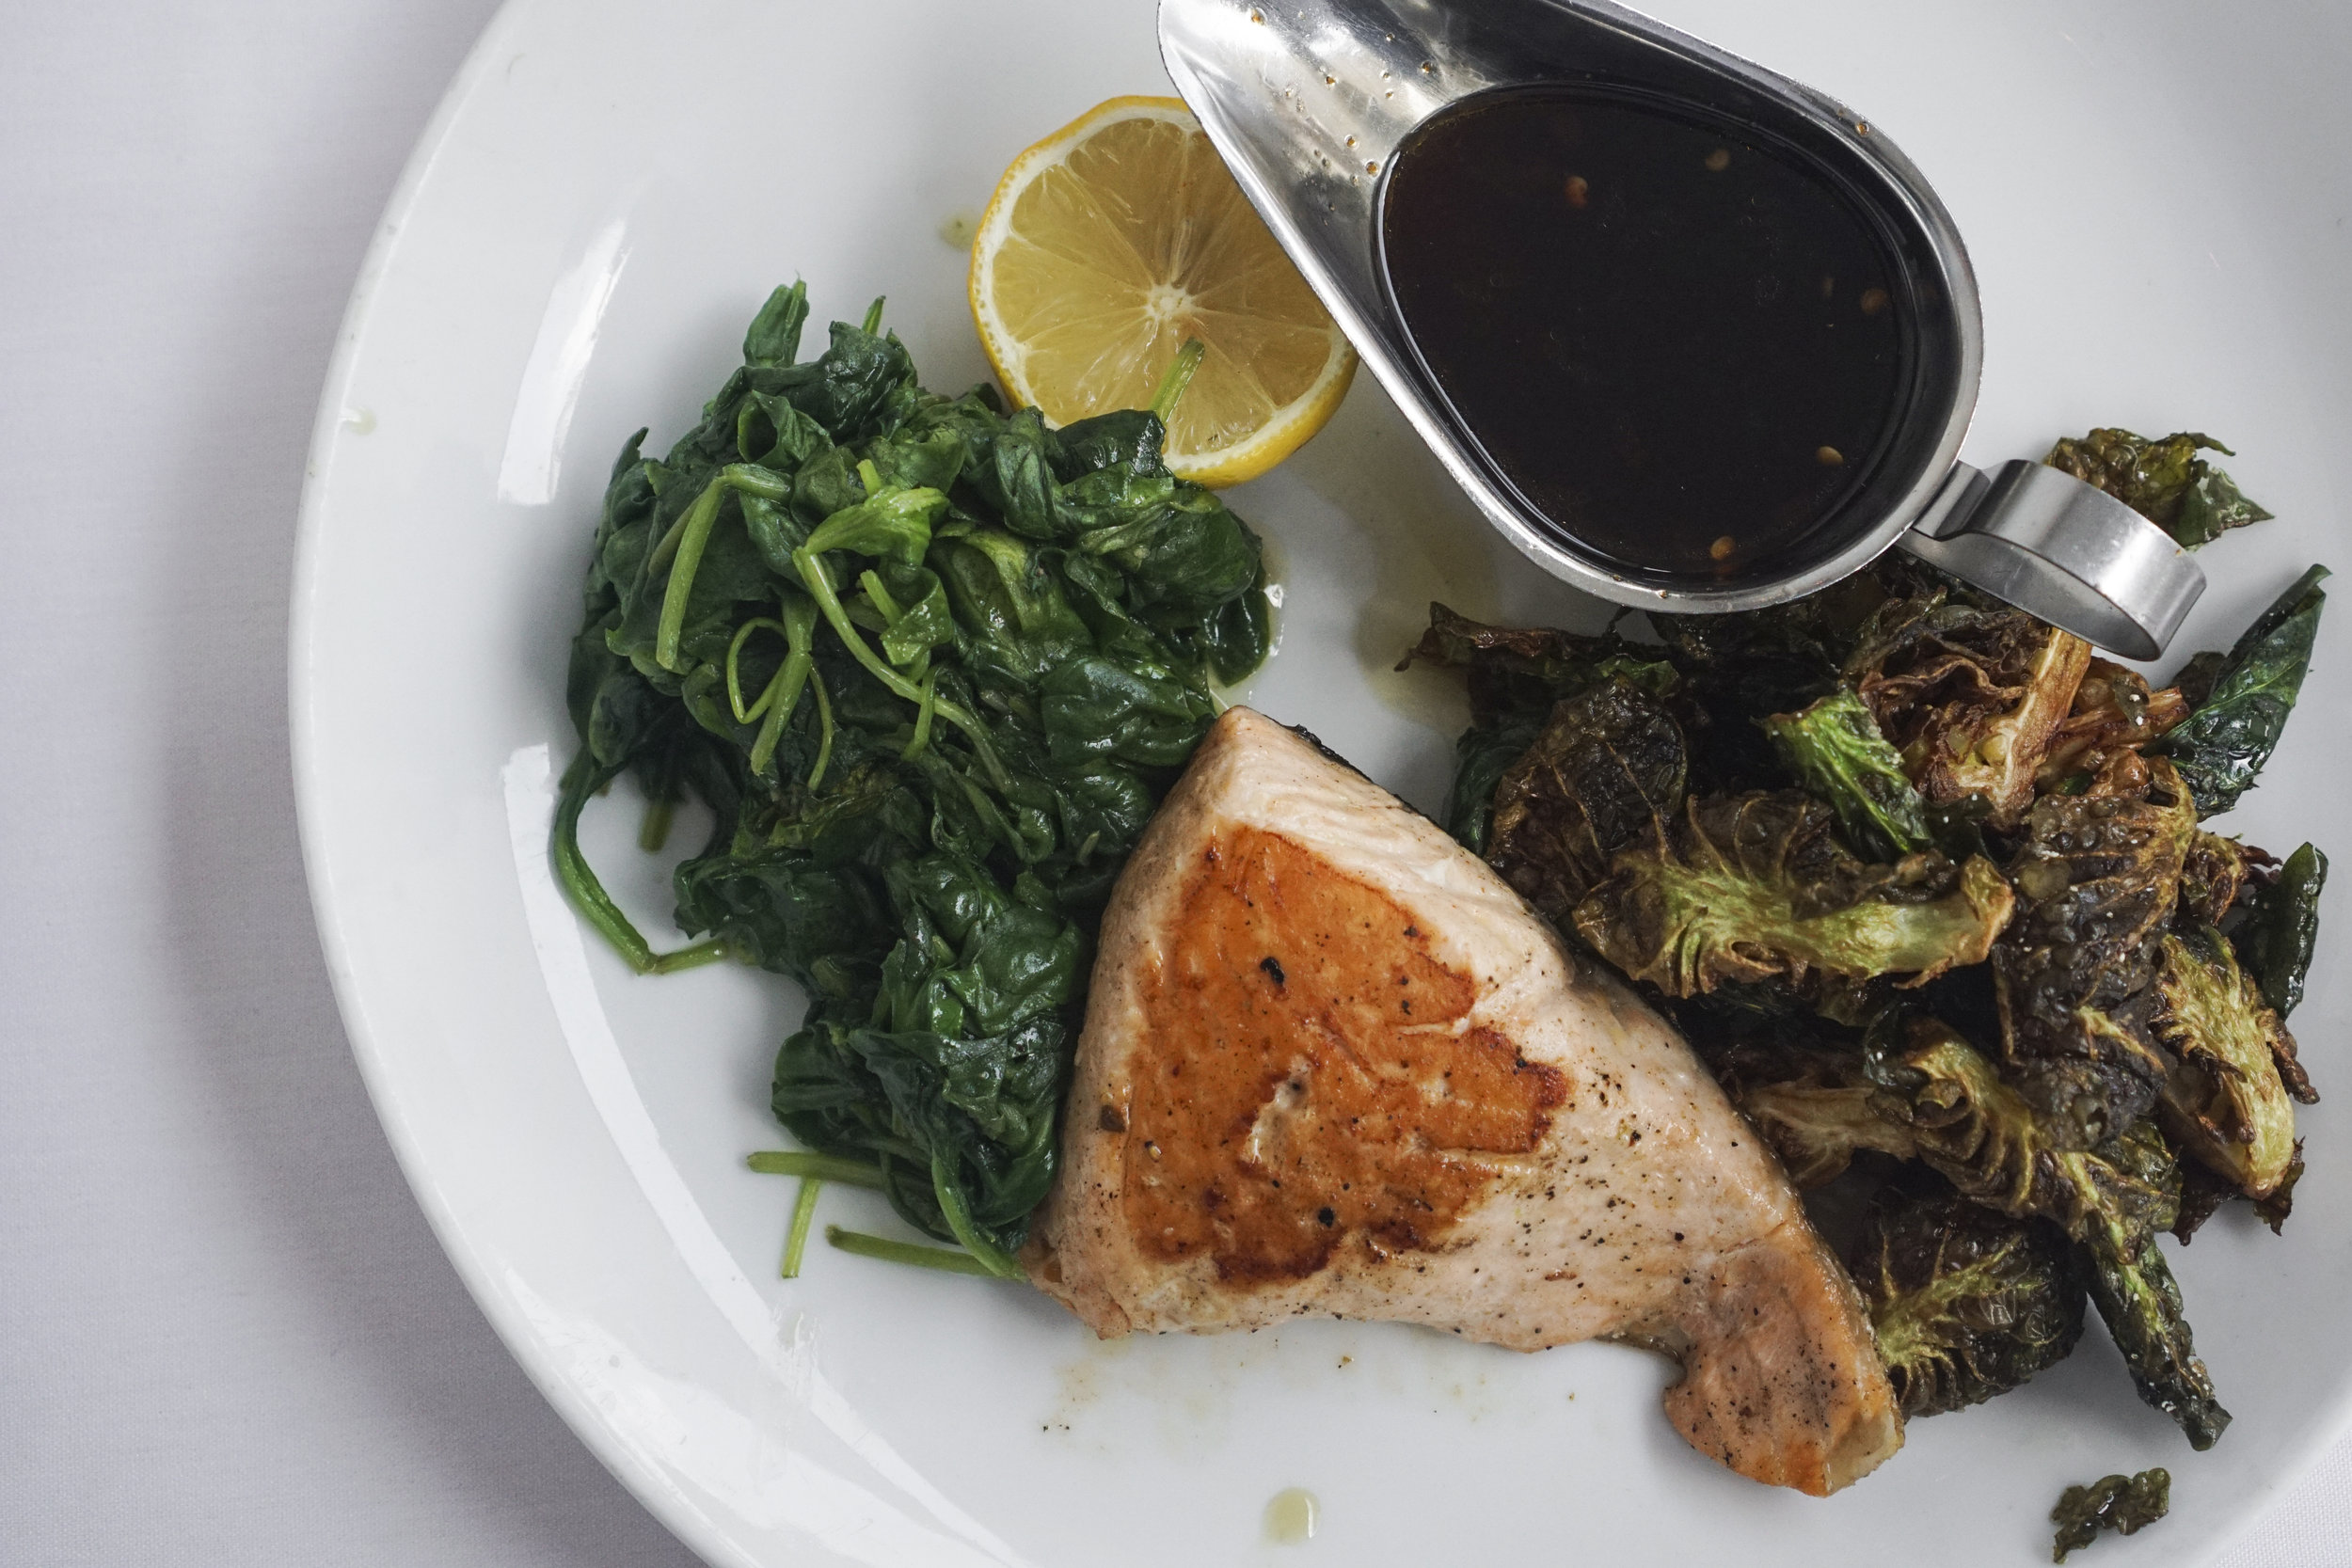 Scottish Salmon with soy chili glaze, sauteed spinach and brussel sprouts